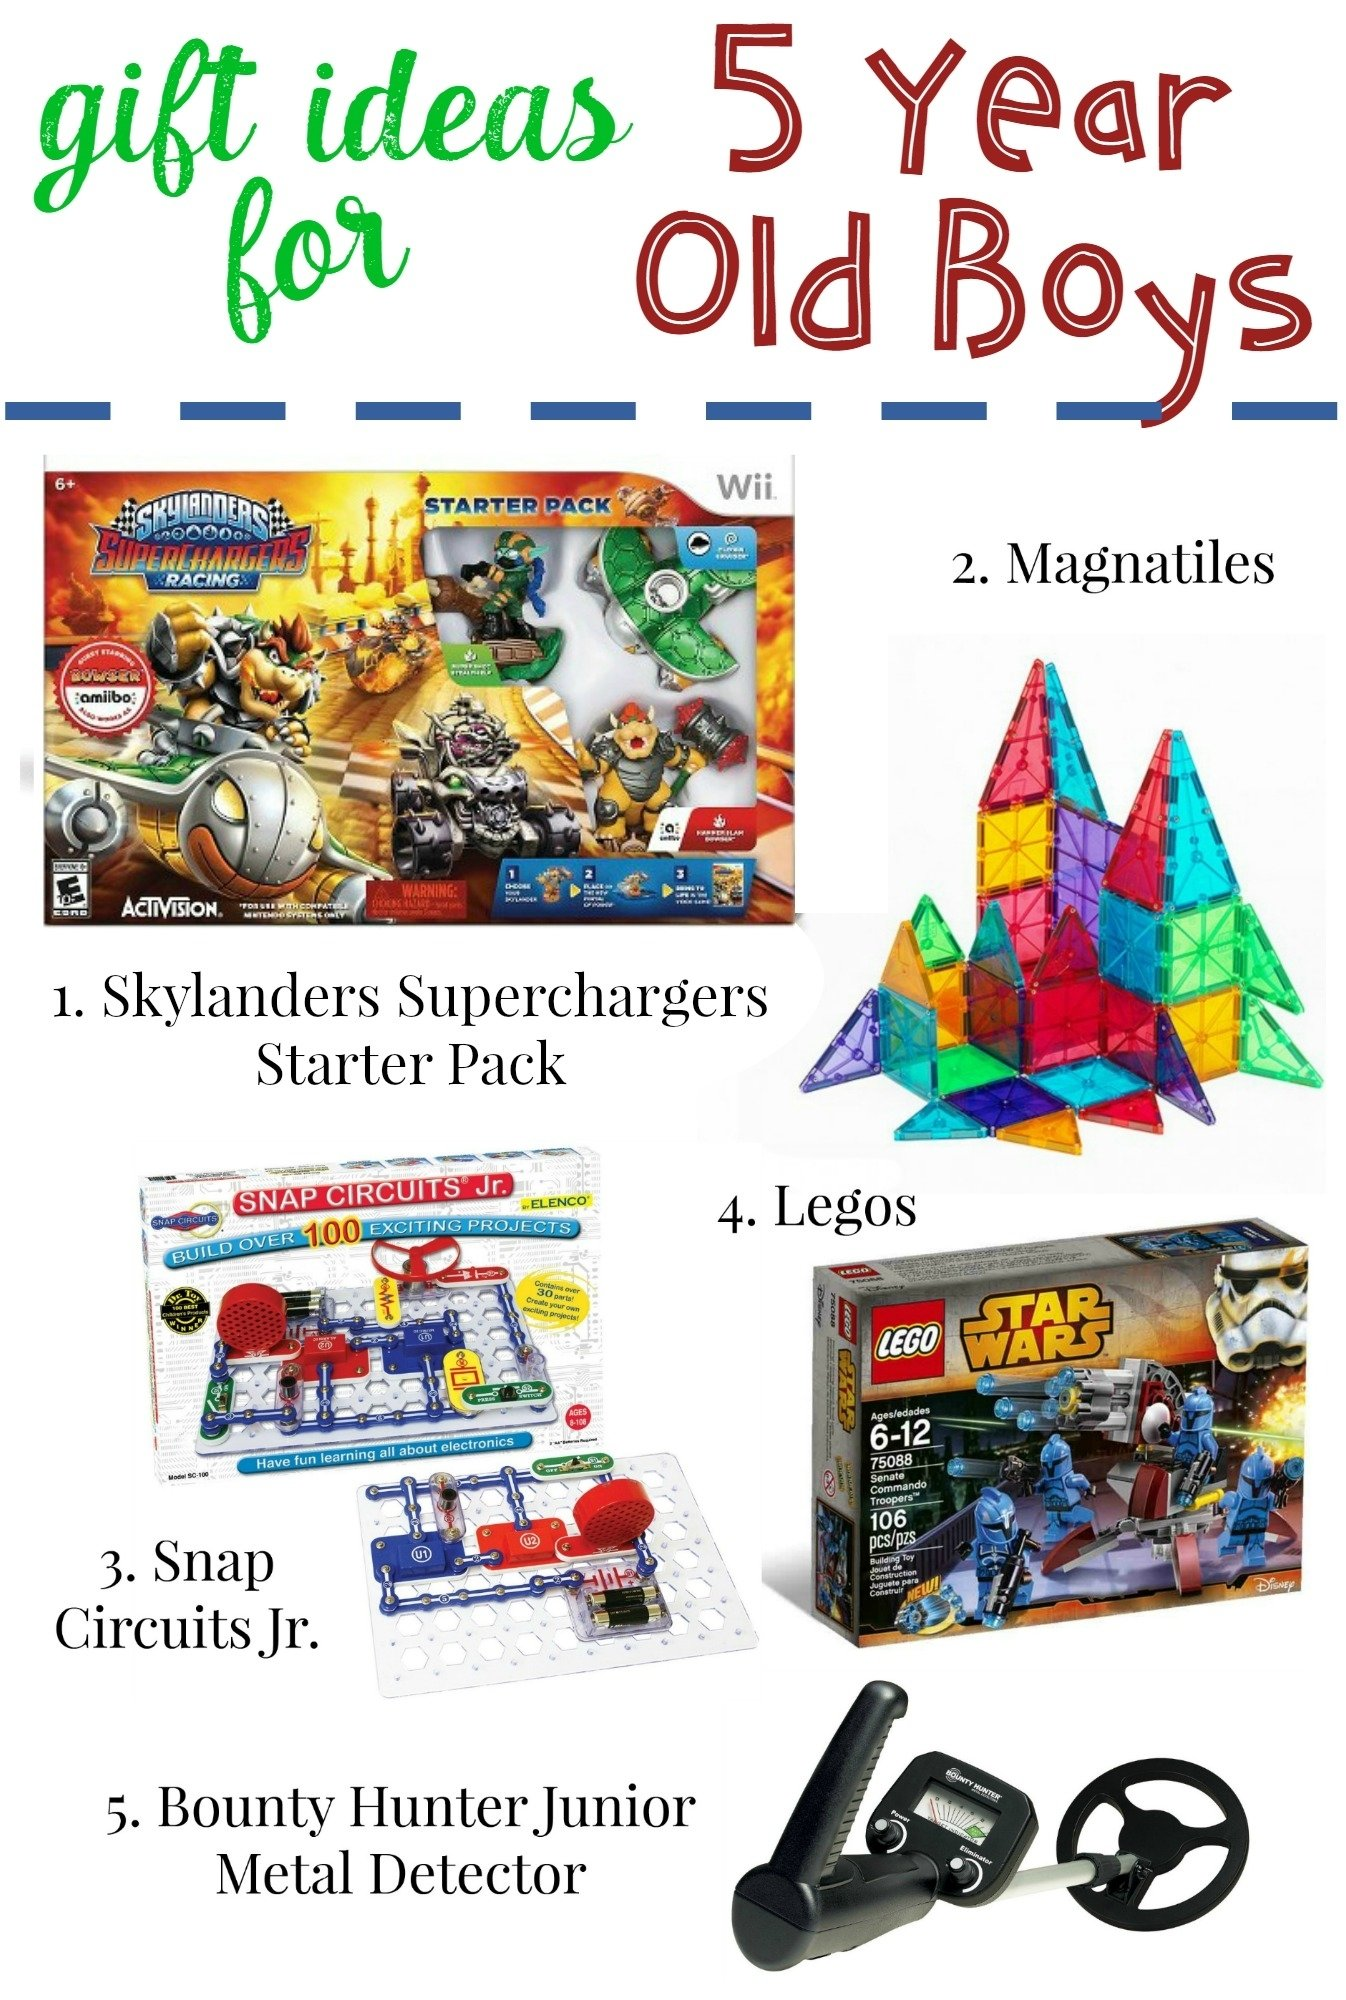 10 Fabulous Gift Idea For 5 Year Old Boy gifts for 5 year old boys 1